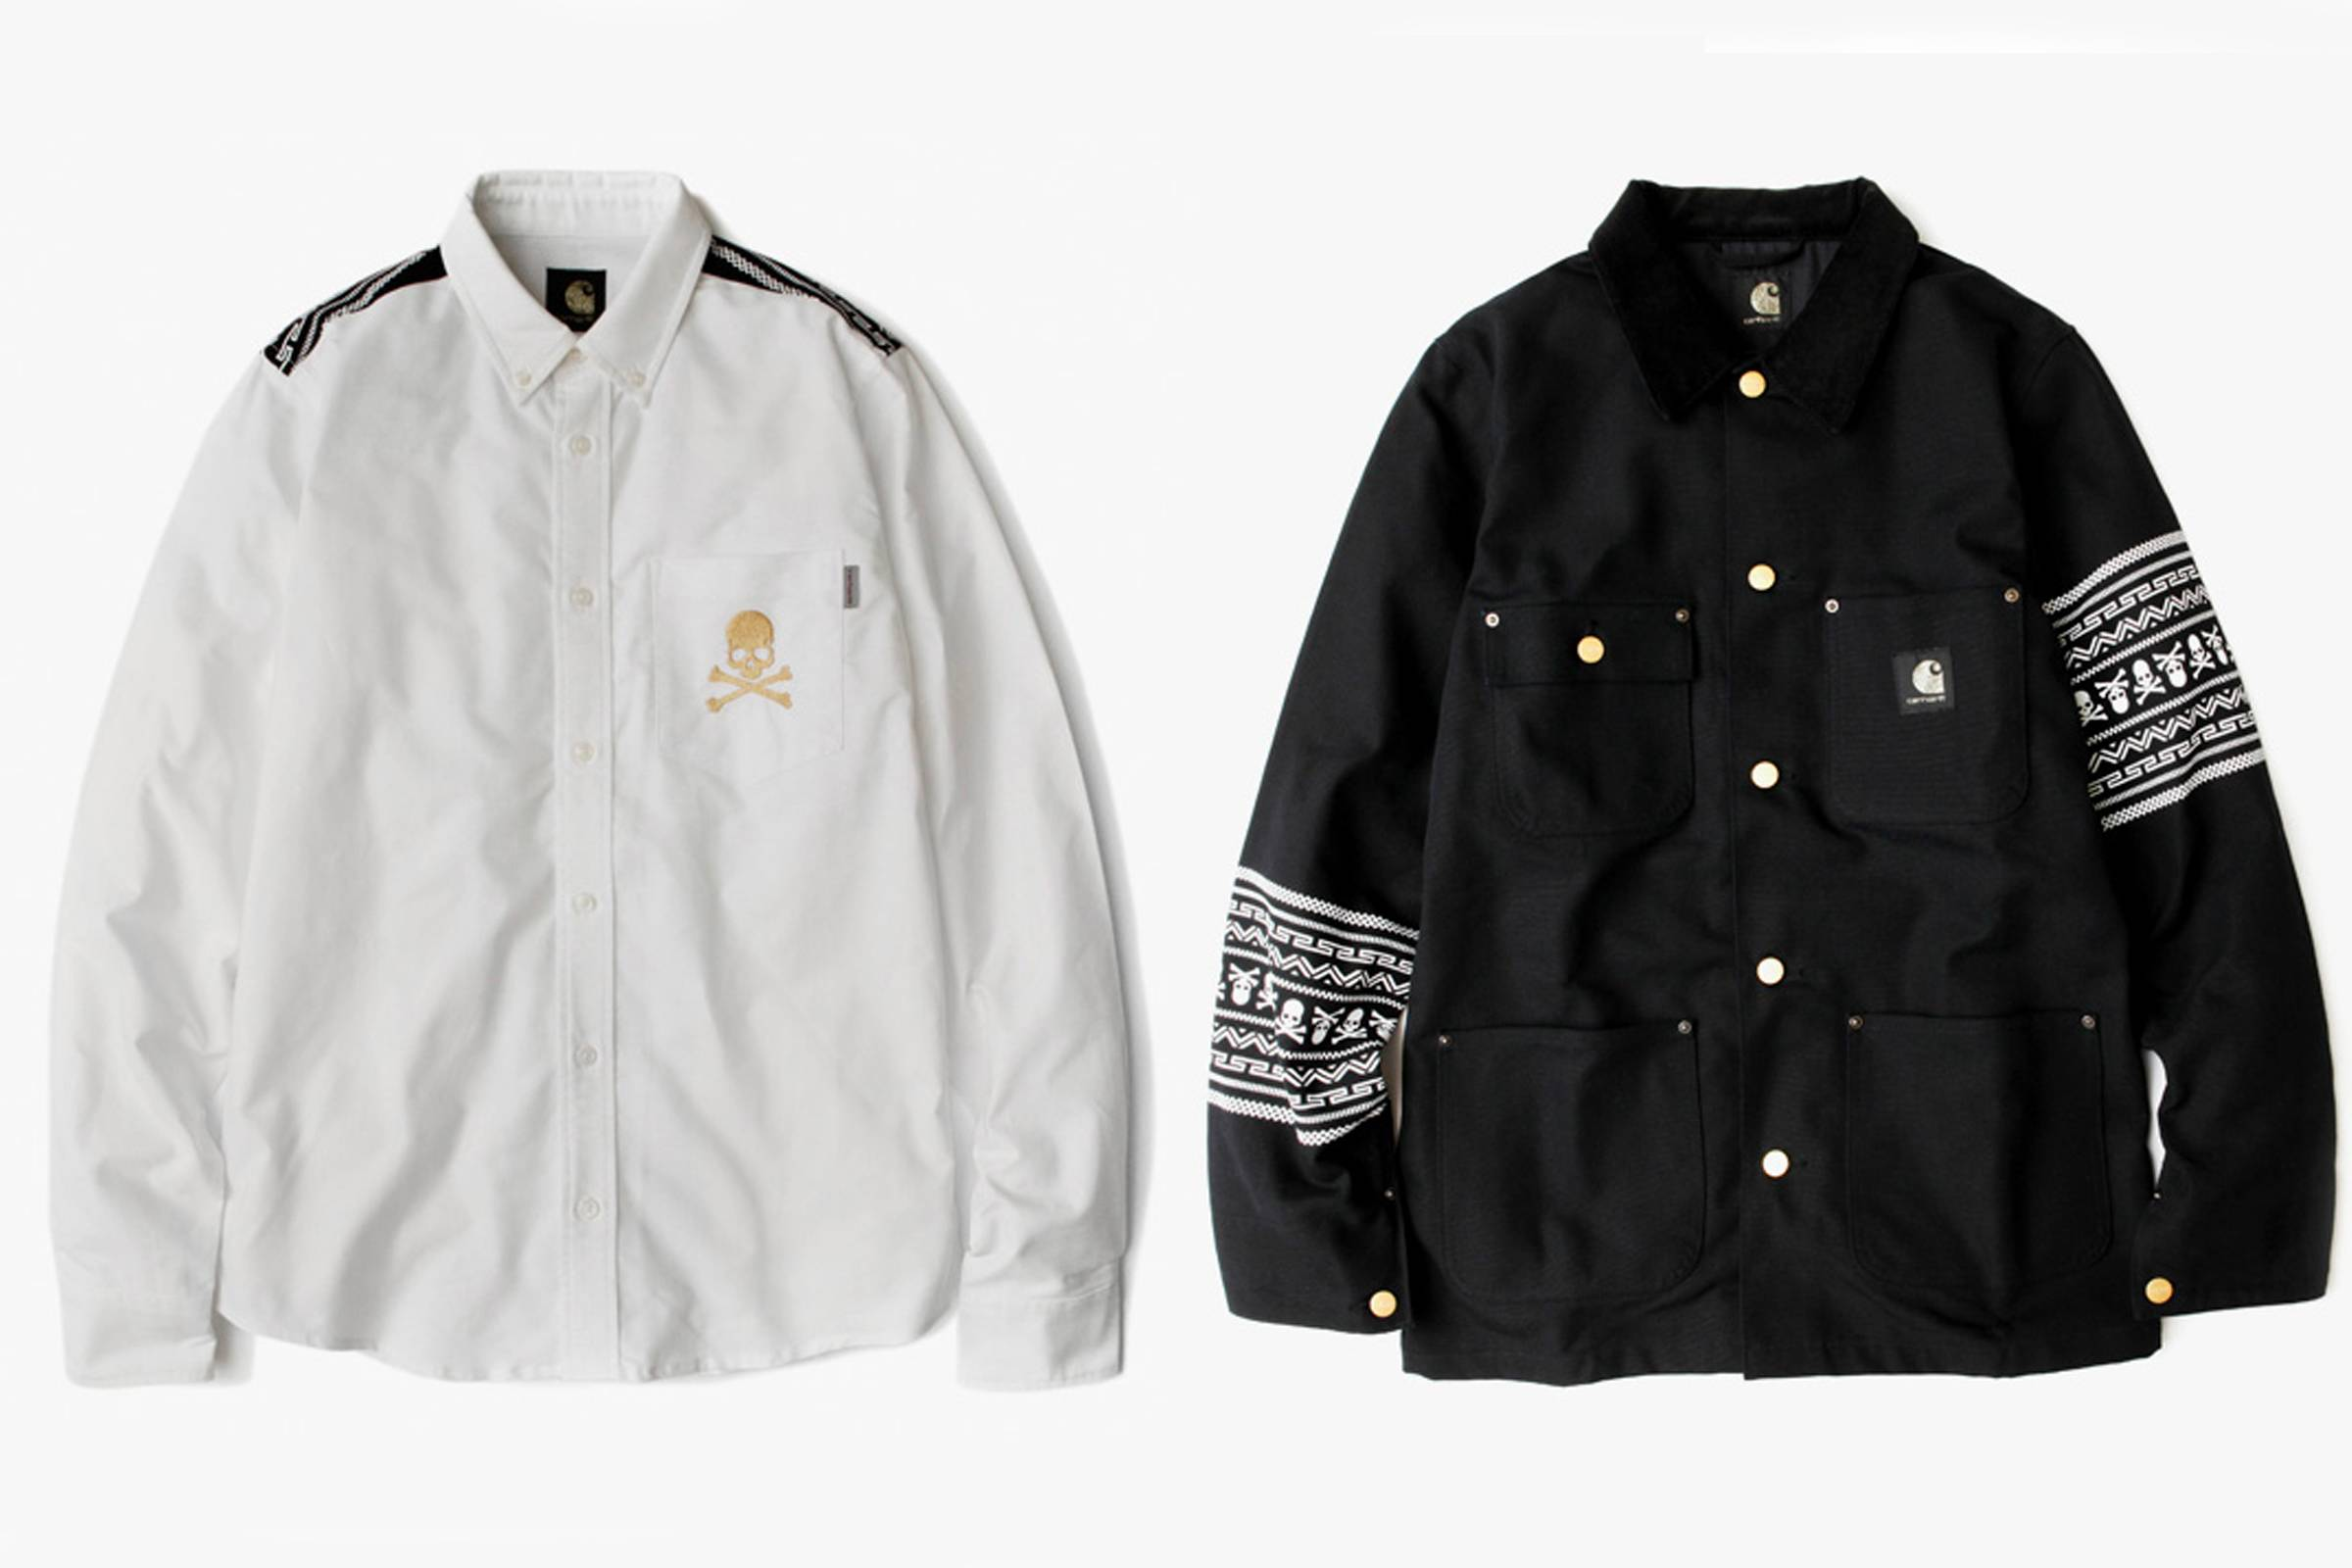 dc079e14 Carhartt W.I.P. and mastermind JAPAN had teamed up prior to 2013, but the  Fall 2013 collection was supposed to be the final instalment of the  collaborative ...